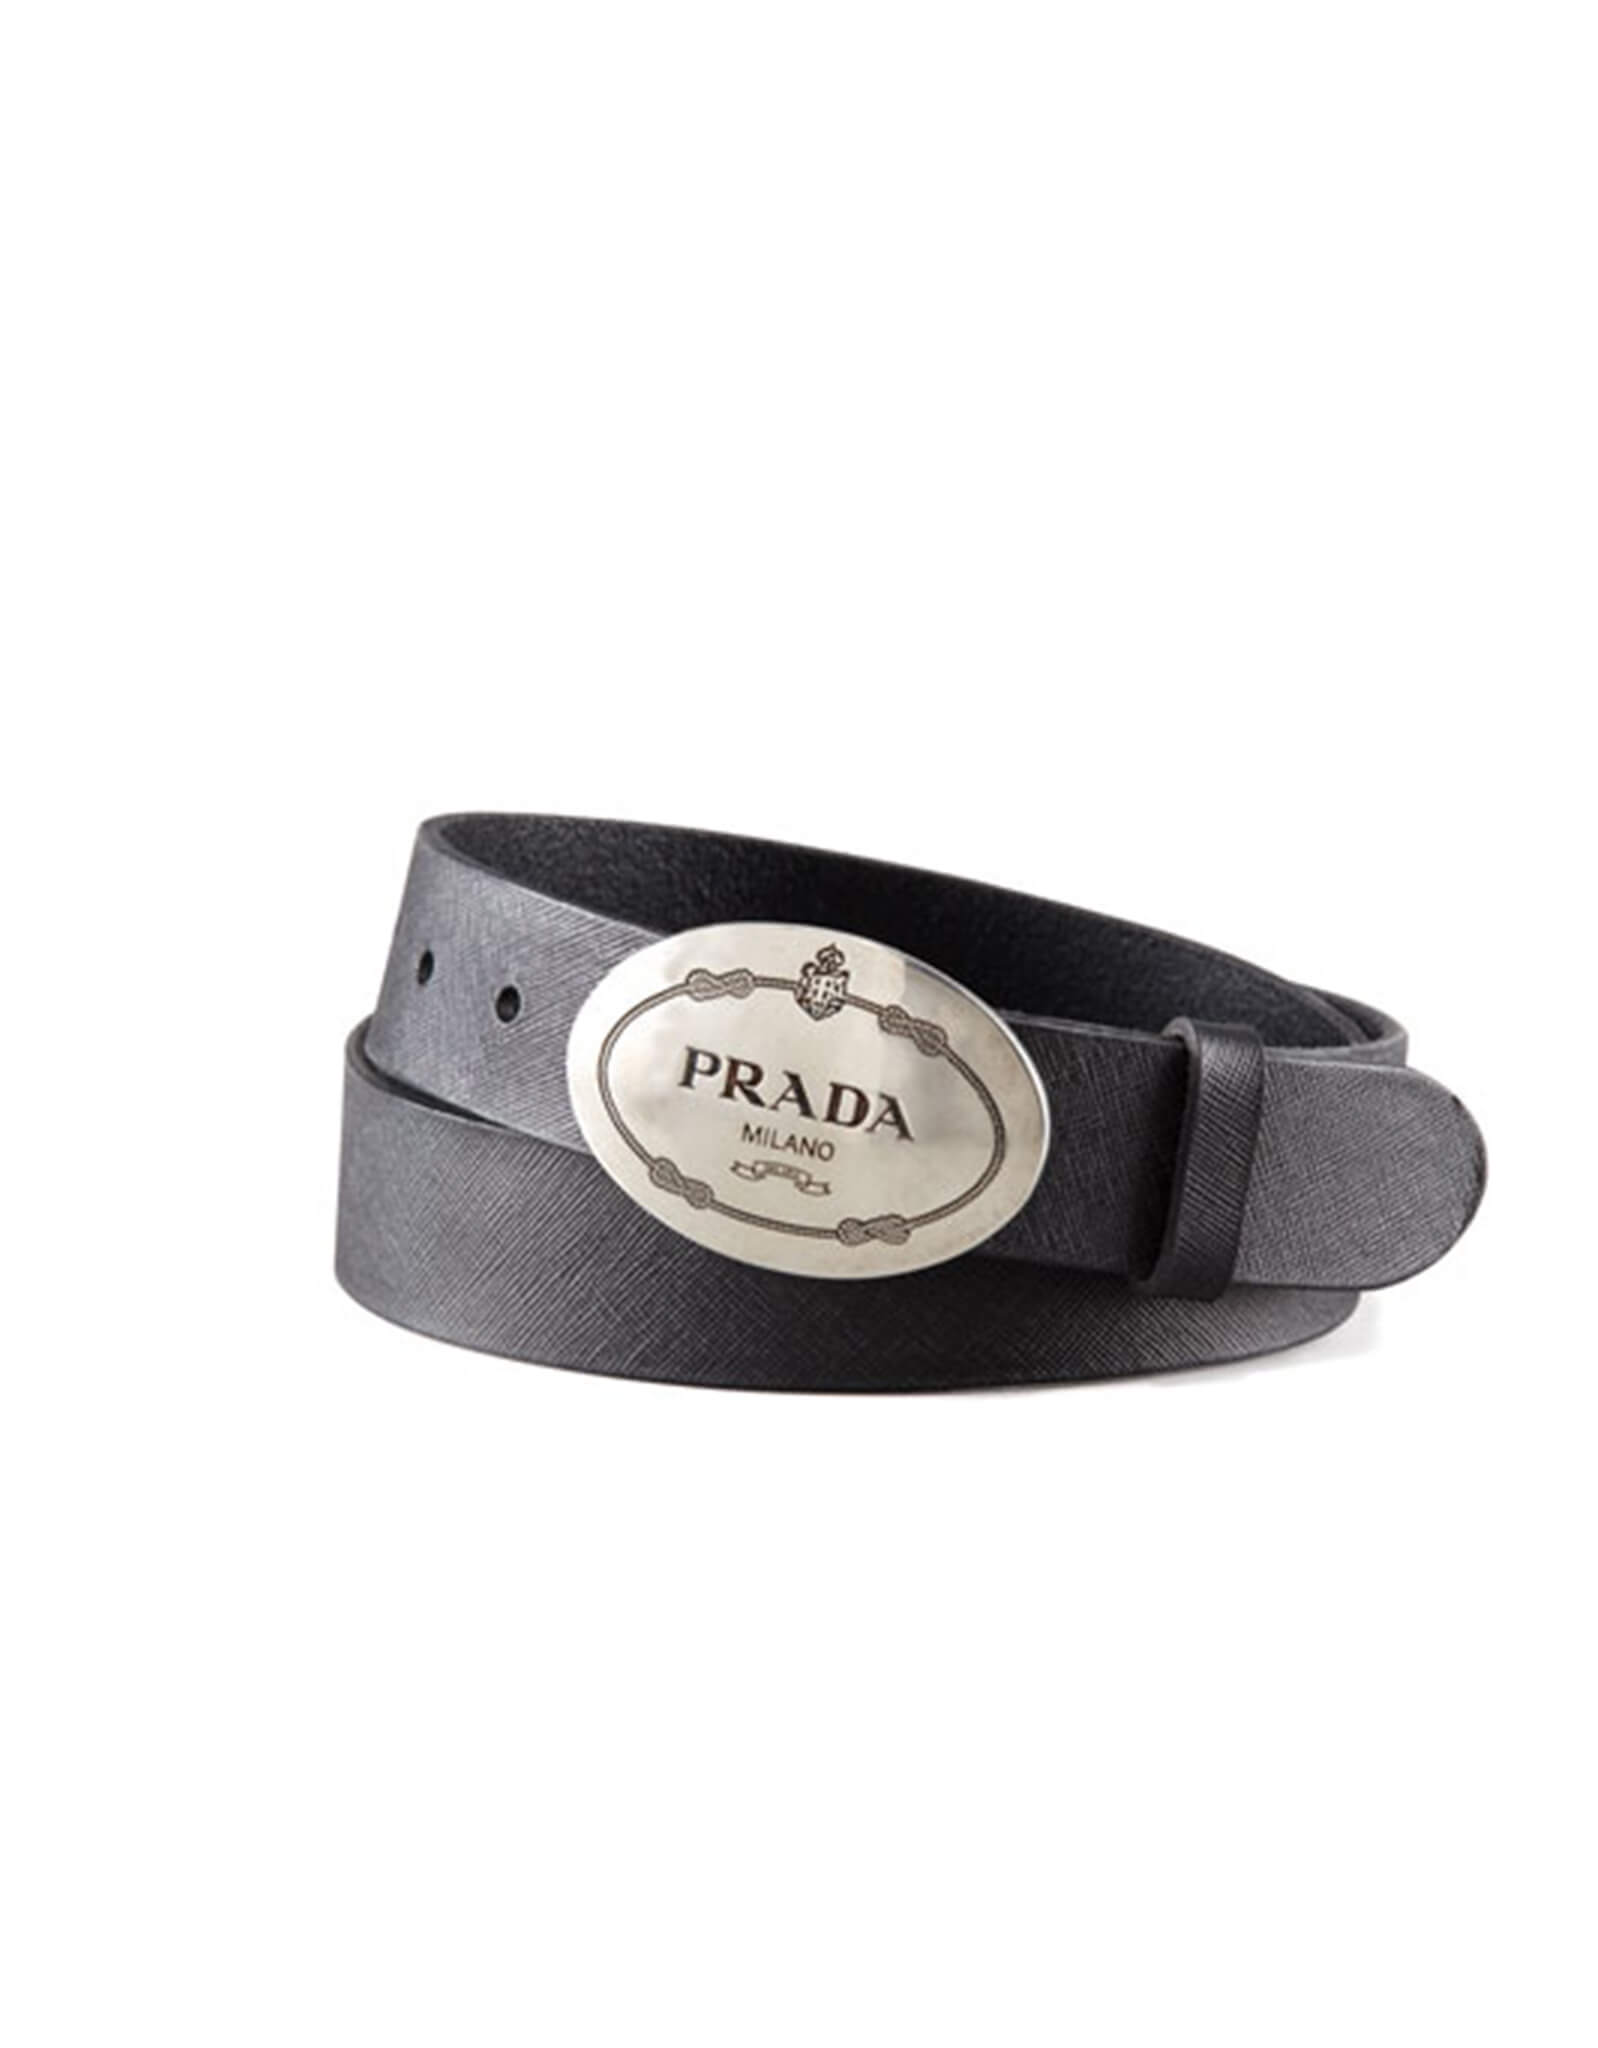 Prada Belt Brown Size 90